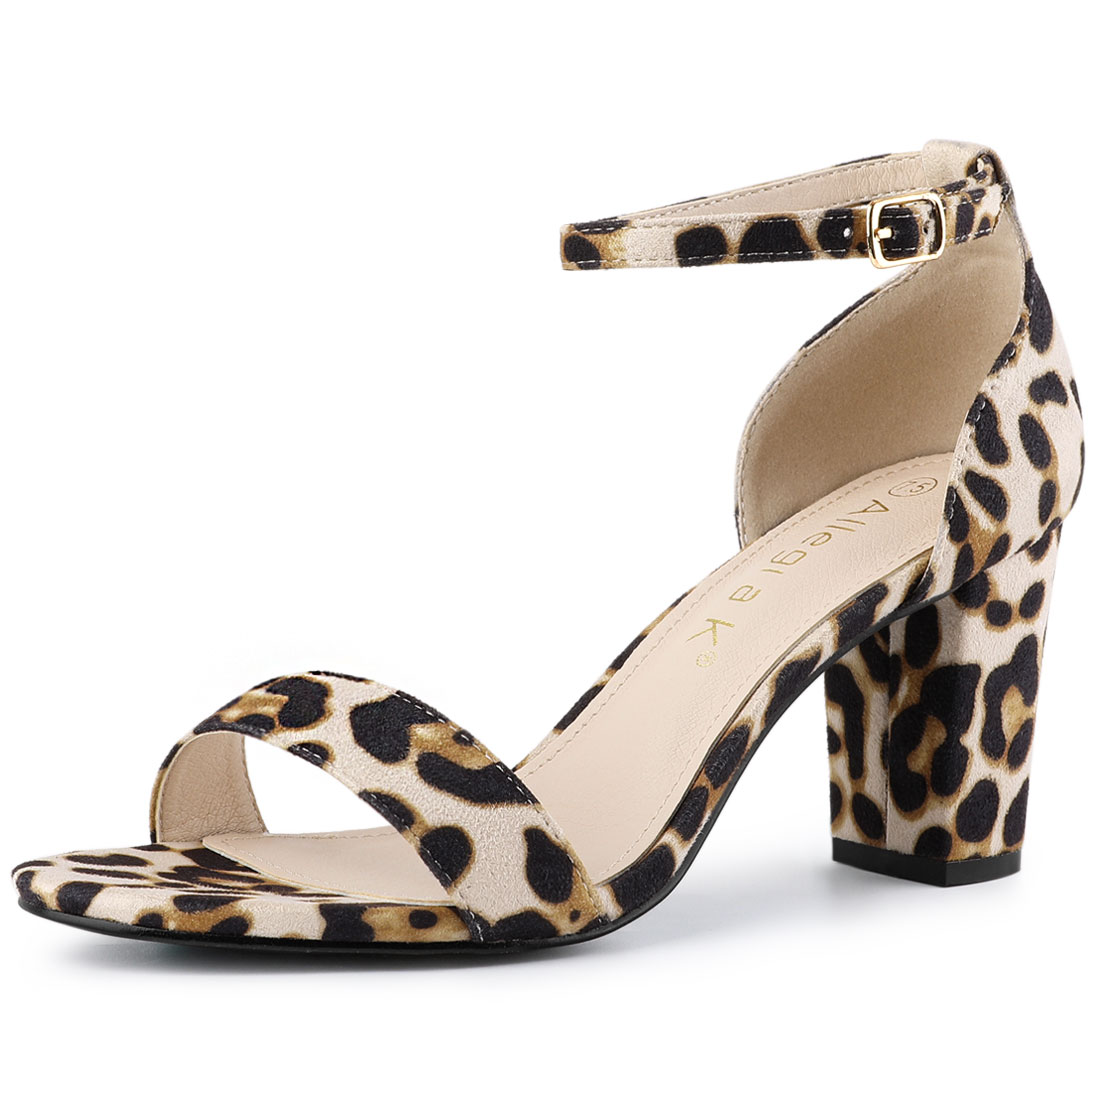 Allegra K Women's Ankle Strap Chunky High Heel Sandals White Leopard US 7